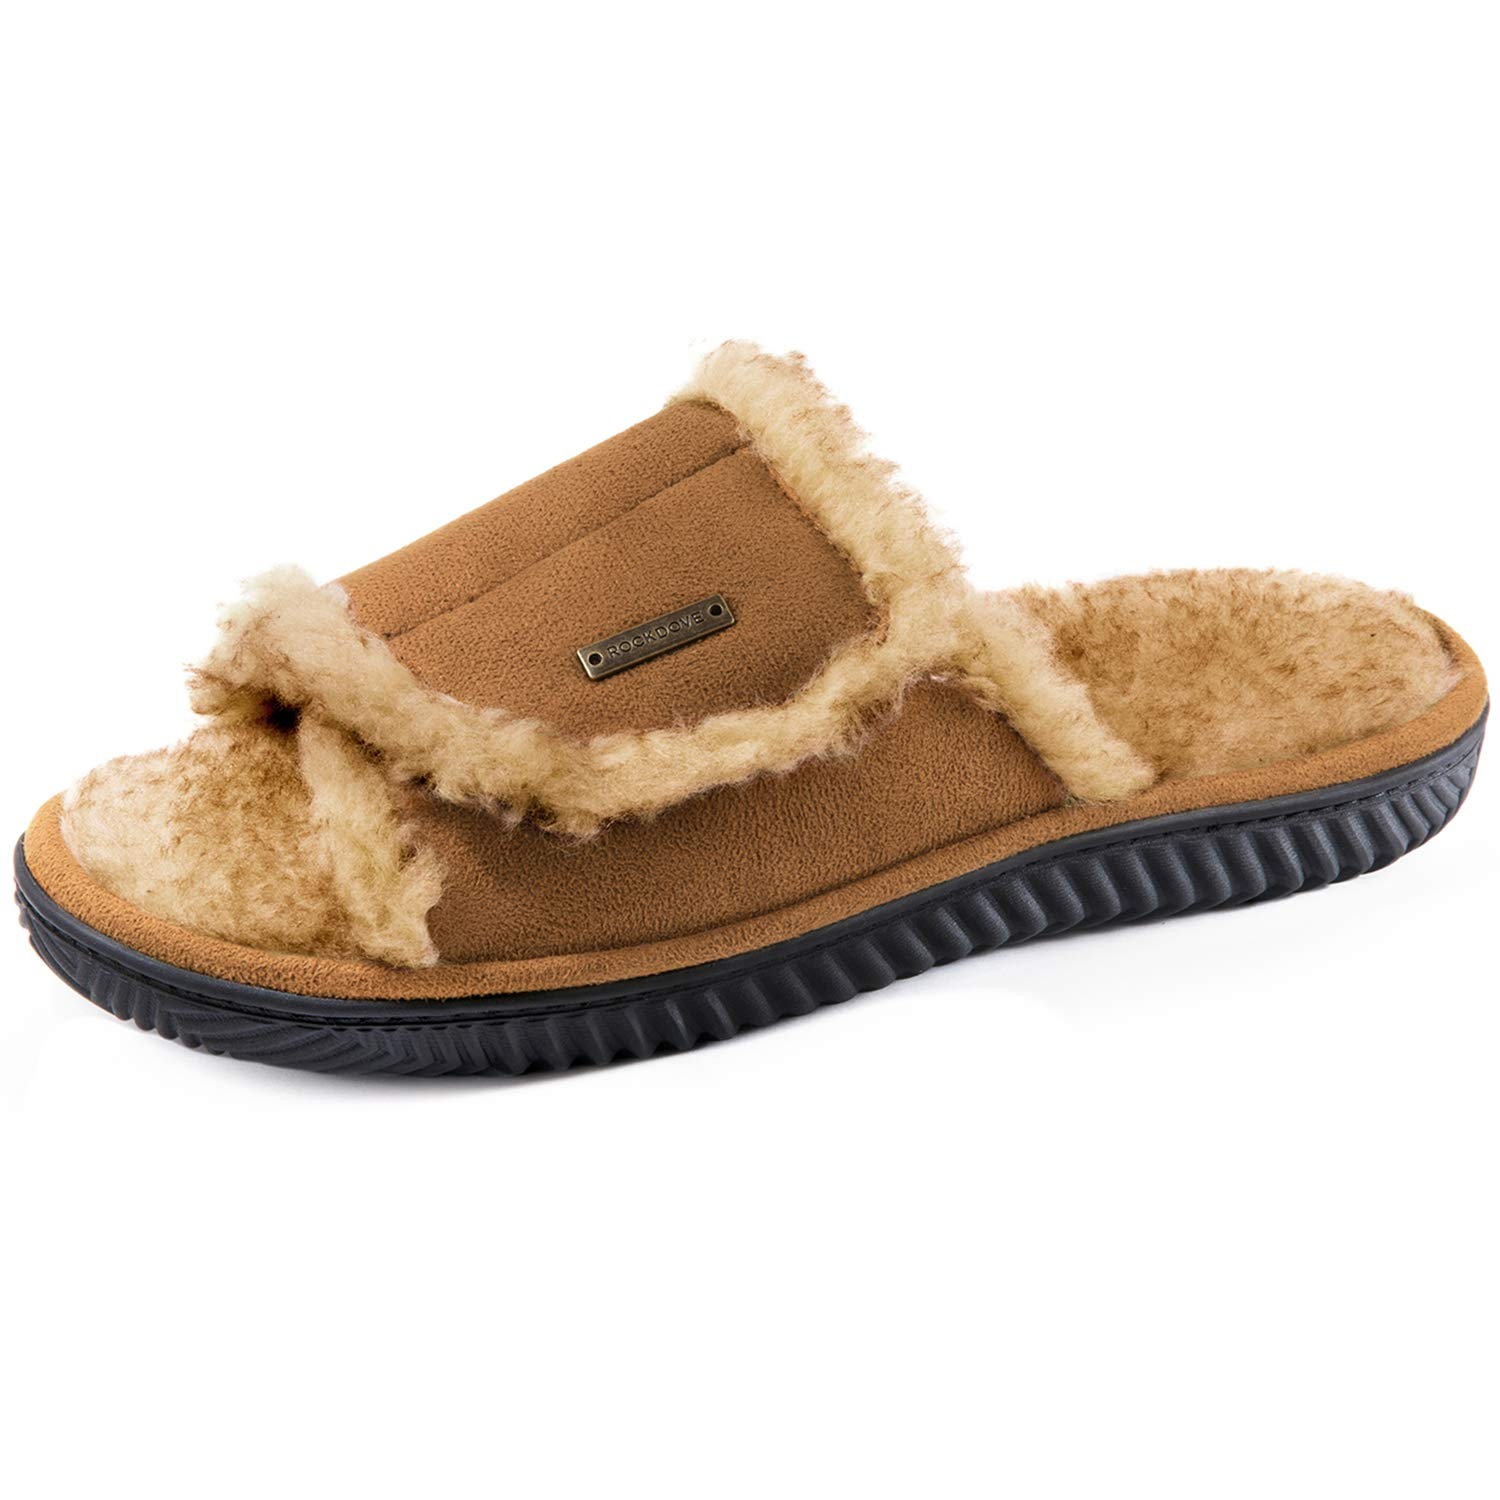 Image of Comfortable Adjustable Slippers for Men - See More Colors